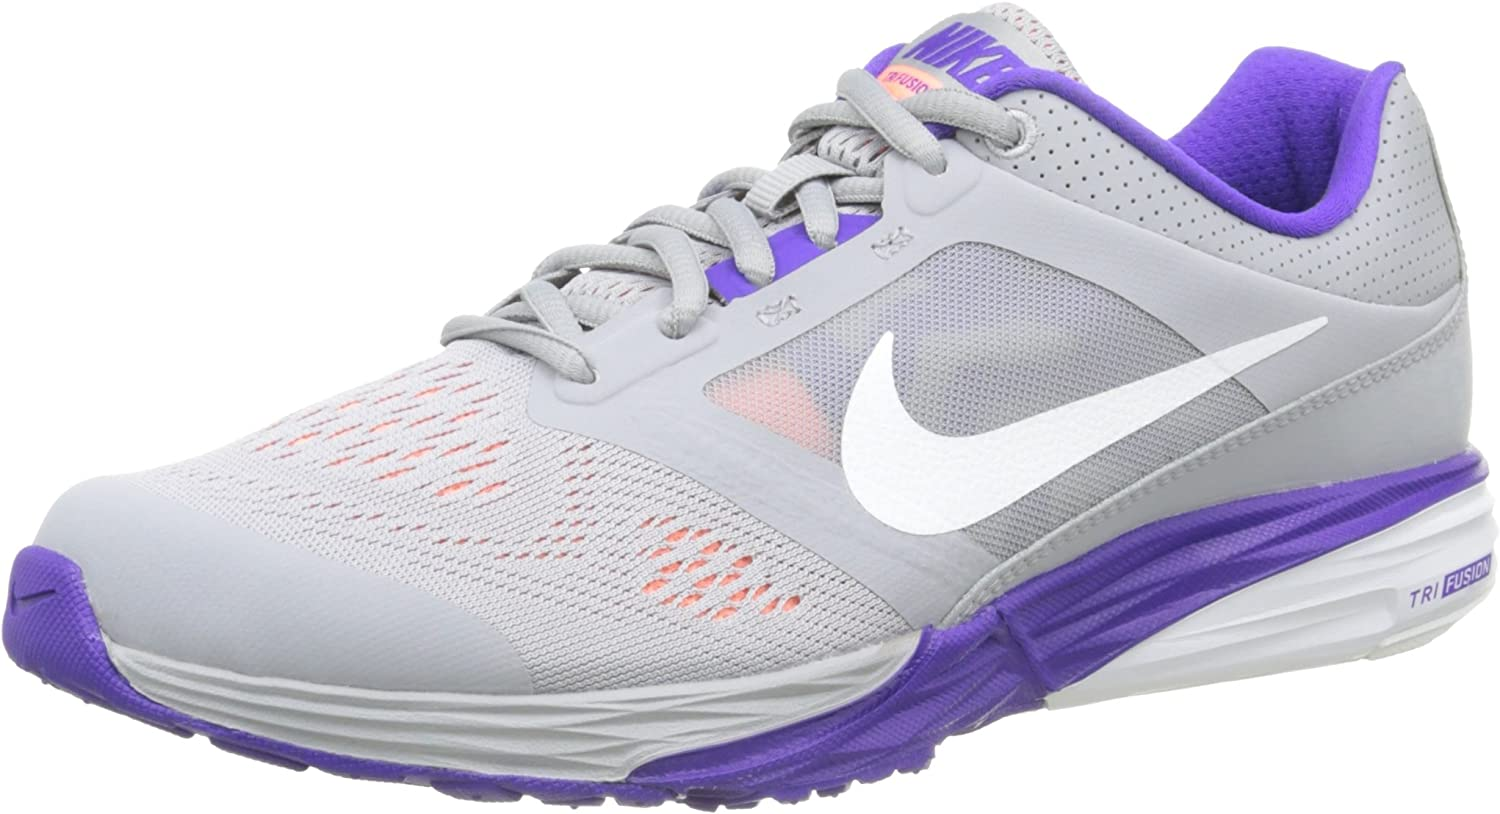 Nike Women s Tri Fusion Run Running Shoe